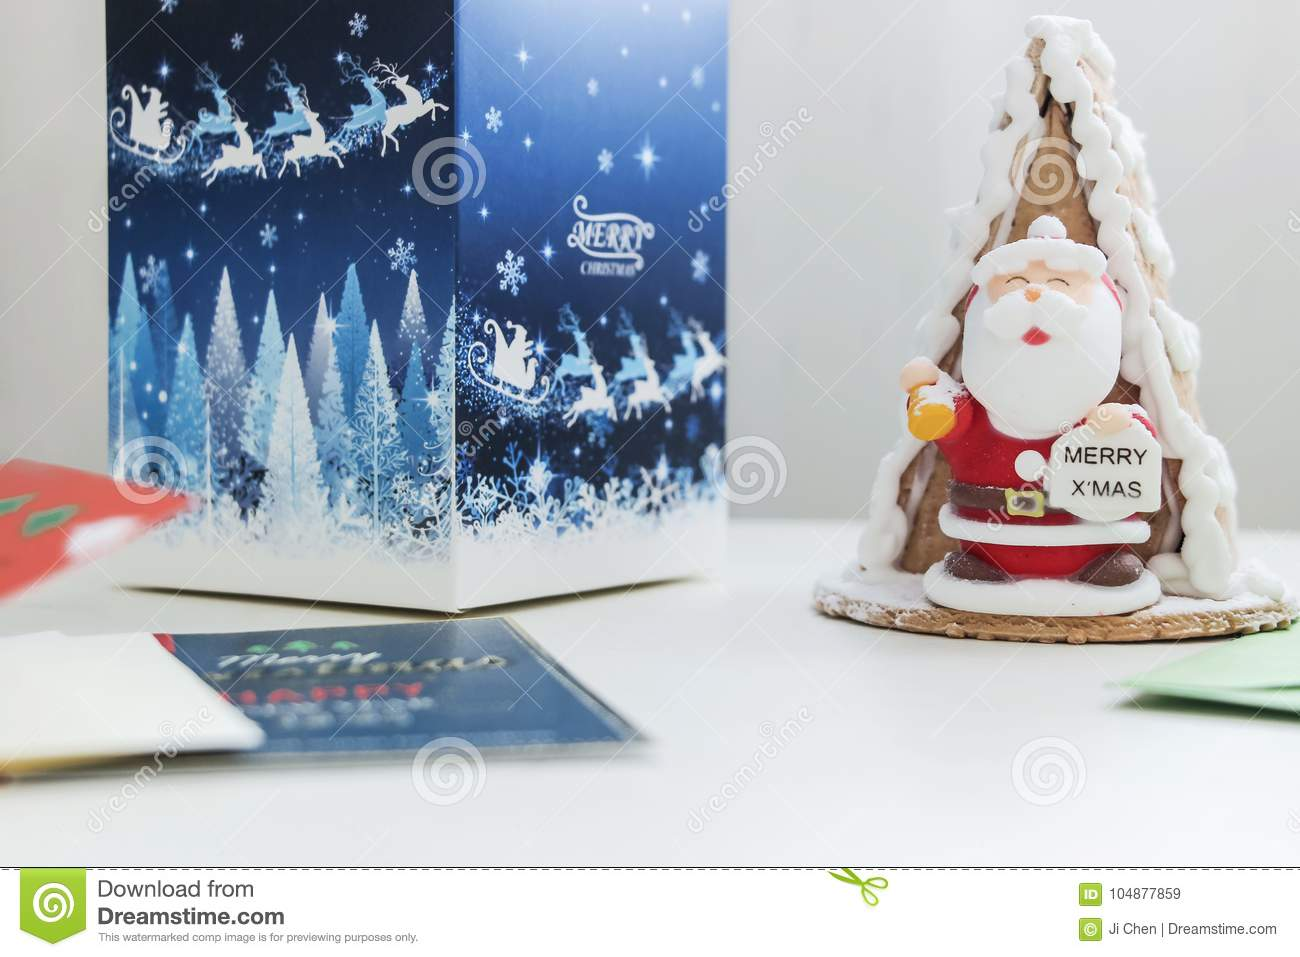 Santa Cake With Gift Box And Christmas Cards Stock Image - Image of ...